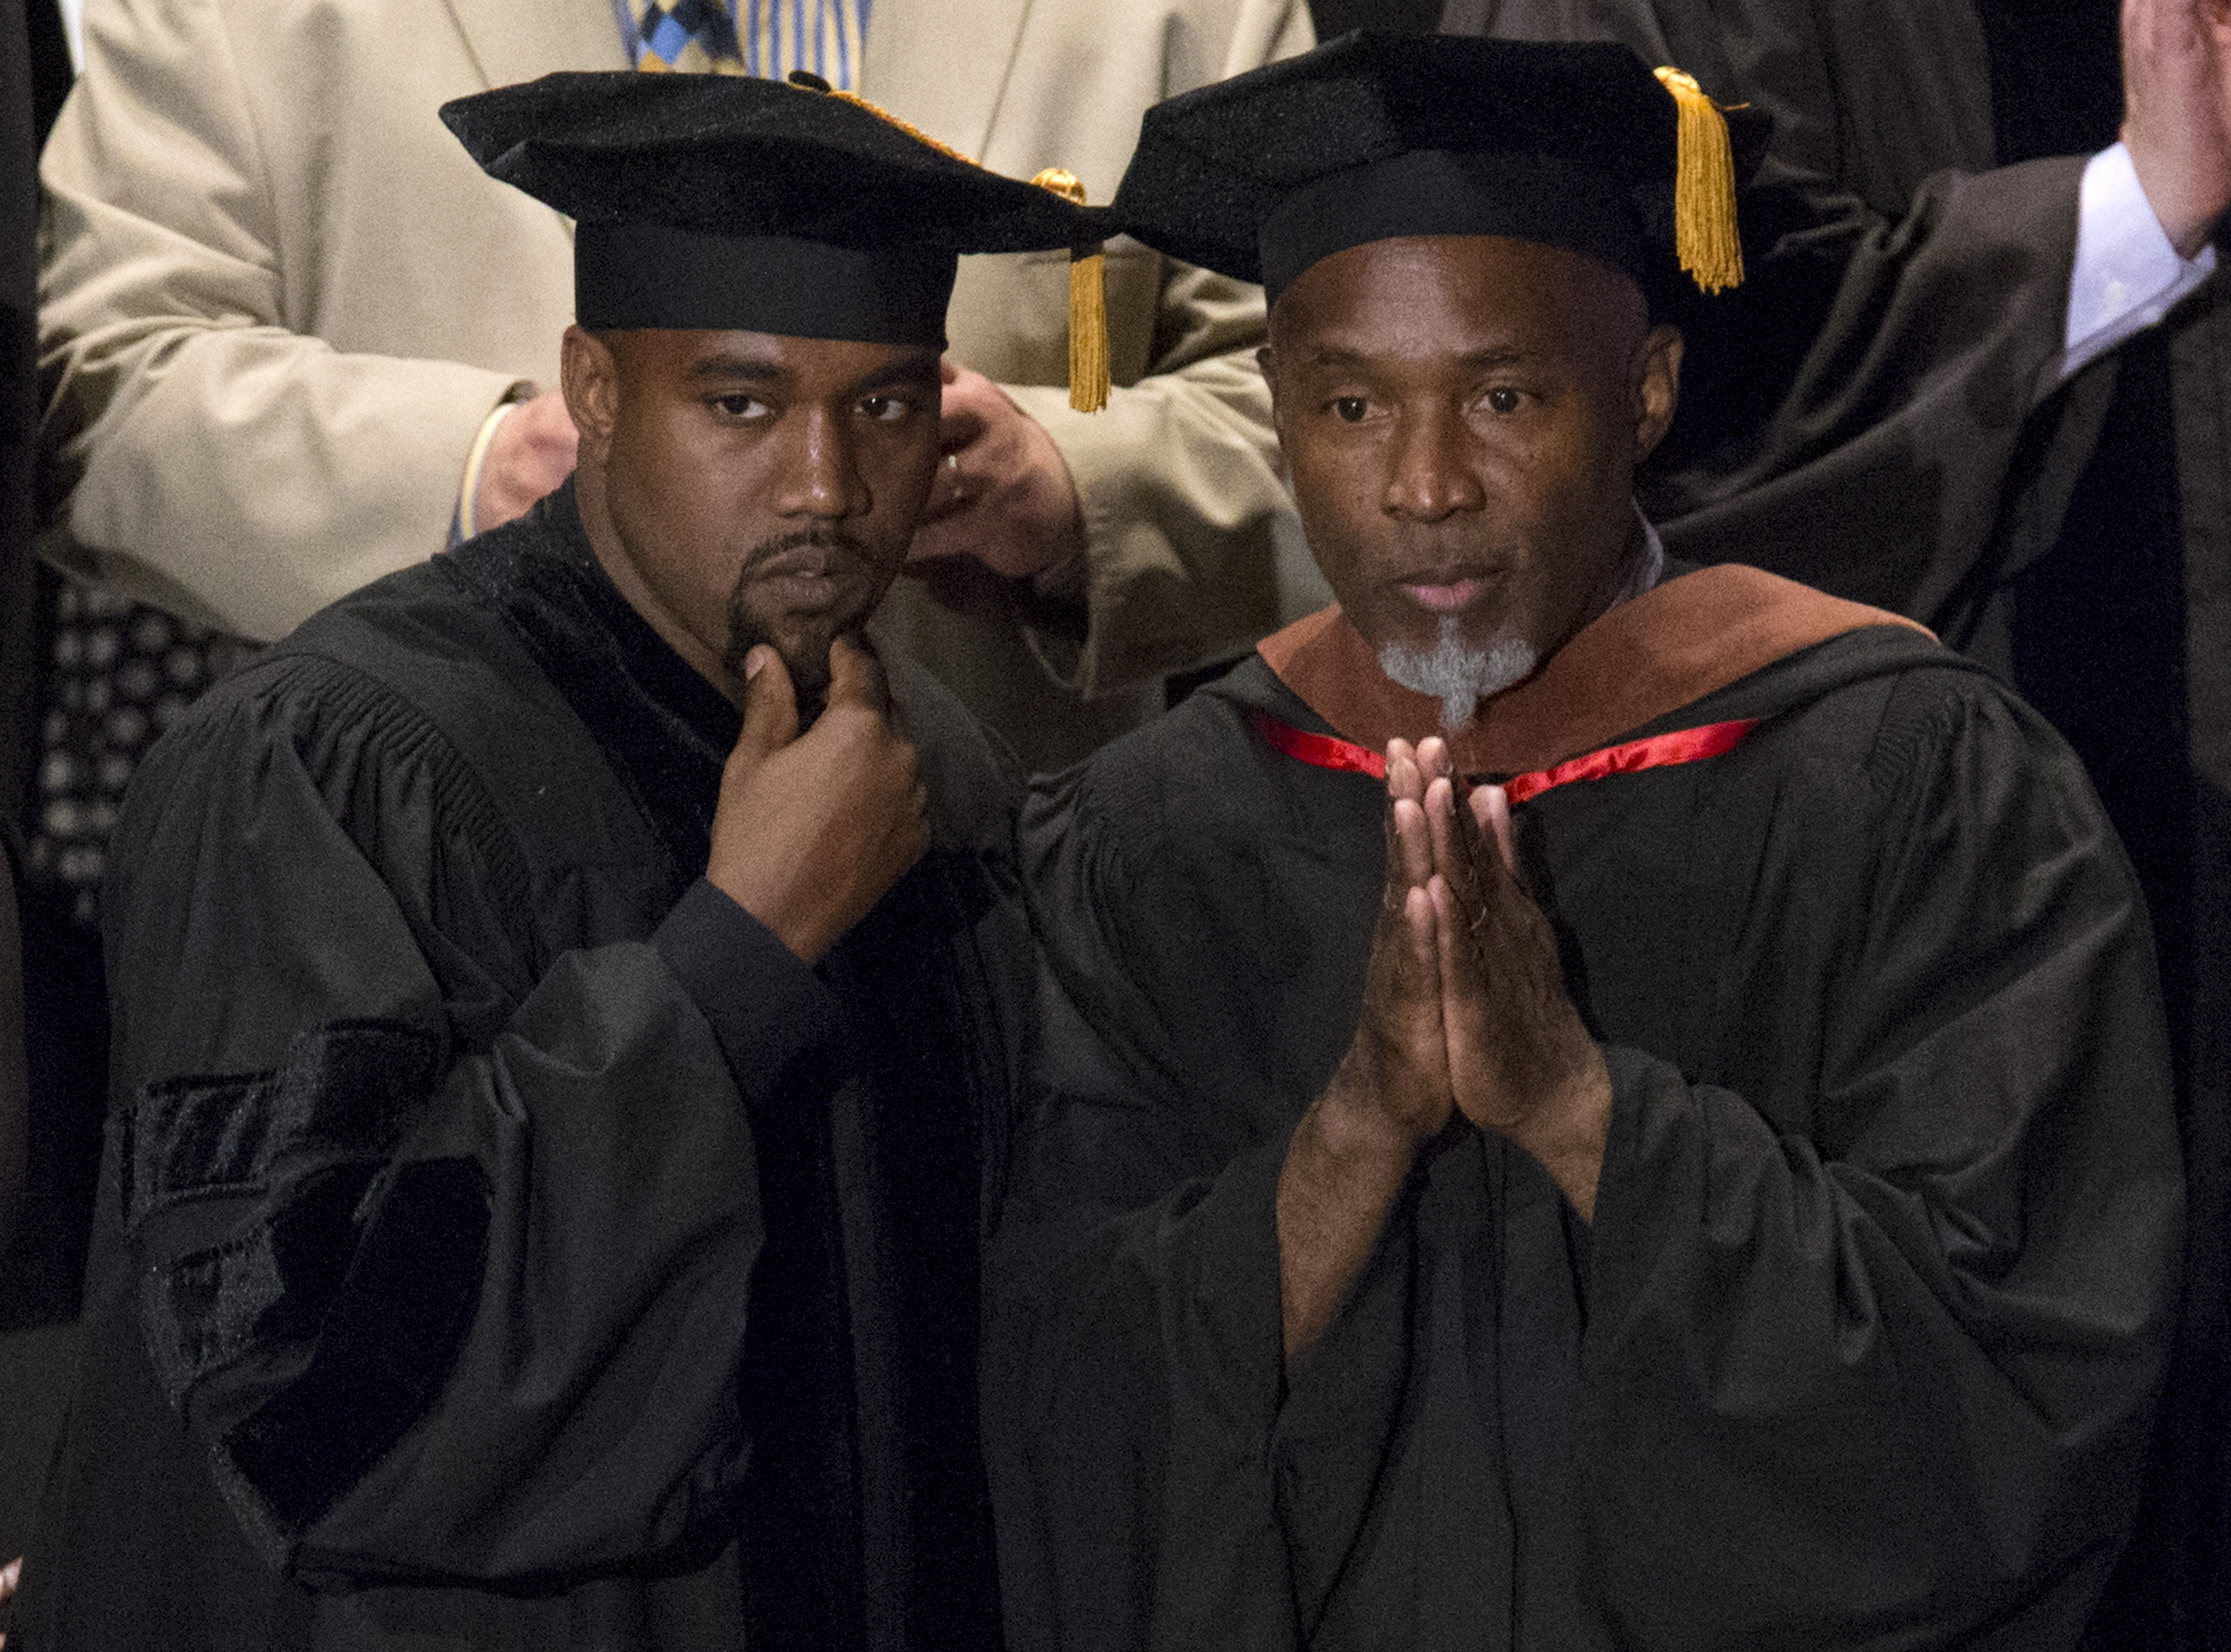 Musician Kanye West and School of the Art Institute of Chicago Professor Nick Cave attend the school's annual commencement ceremony where West received an honorary doctorate degree in Chicago, Illinois on May 11, 2015